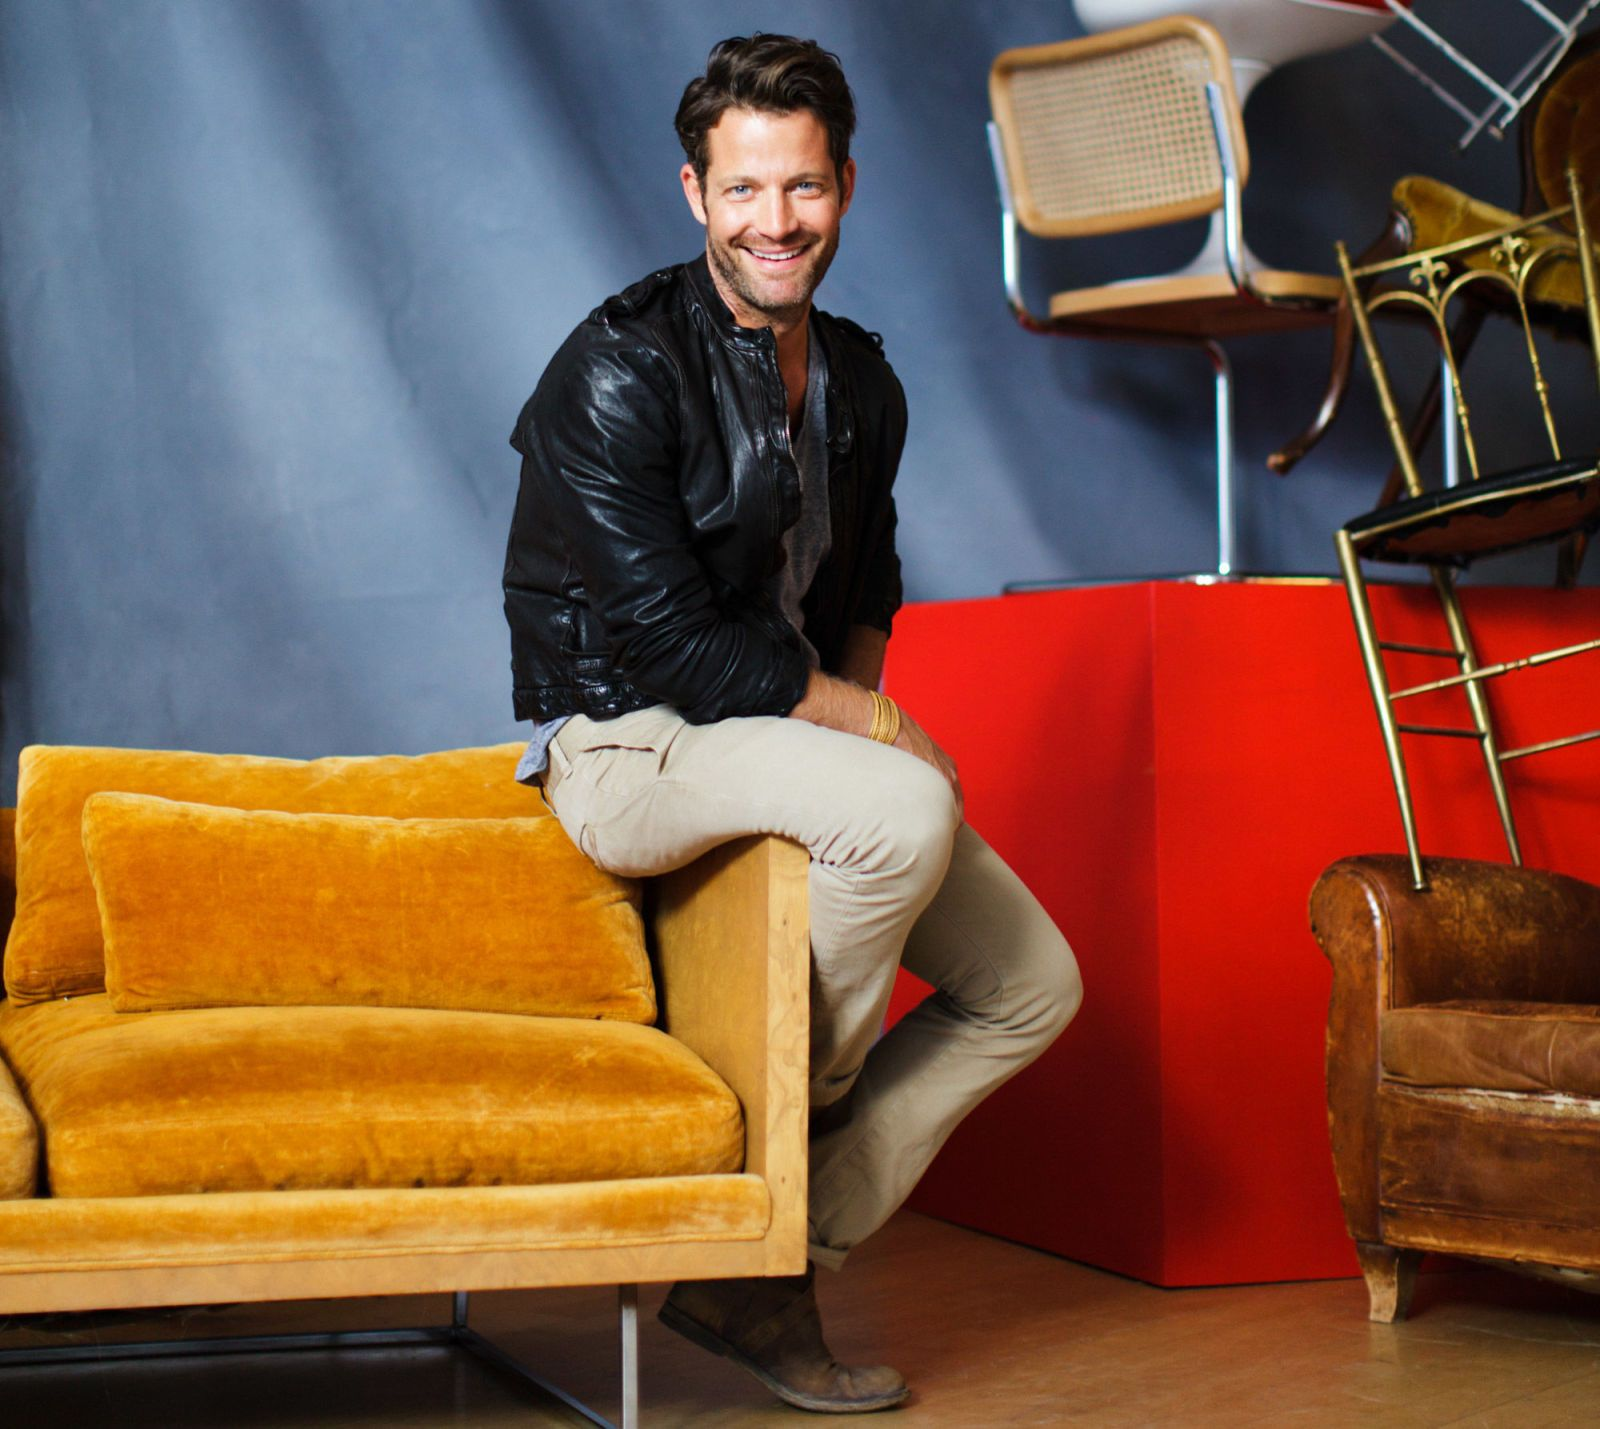 EXCLUSIVE: Nate Berkus On His New Target Collection, Spring Decorating Ideas, and Preparing for Fatherhood